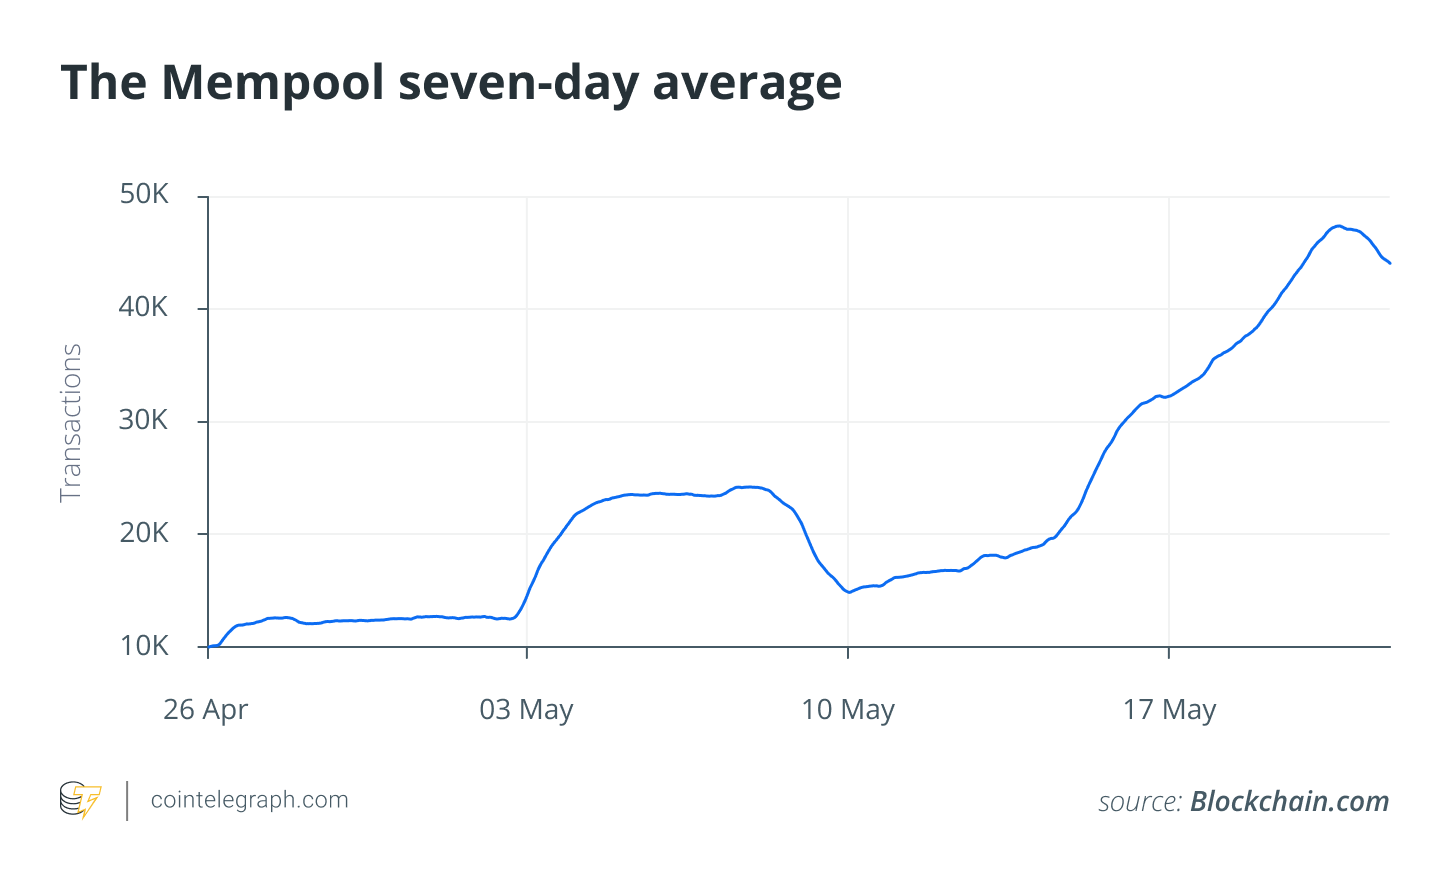 The Mempool seven-day average